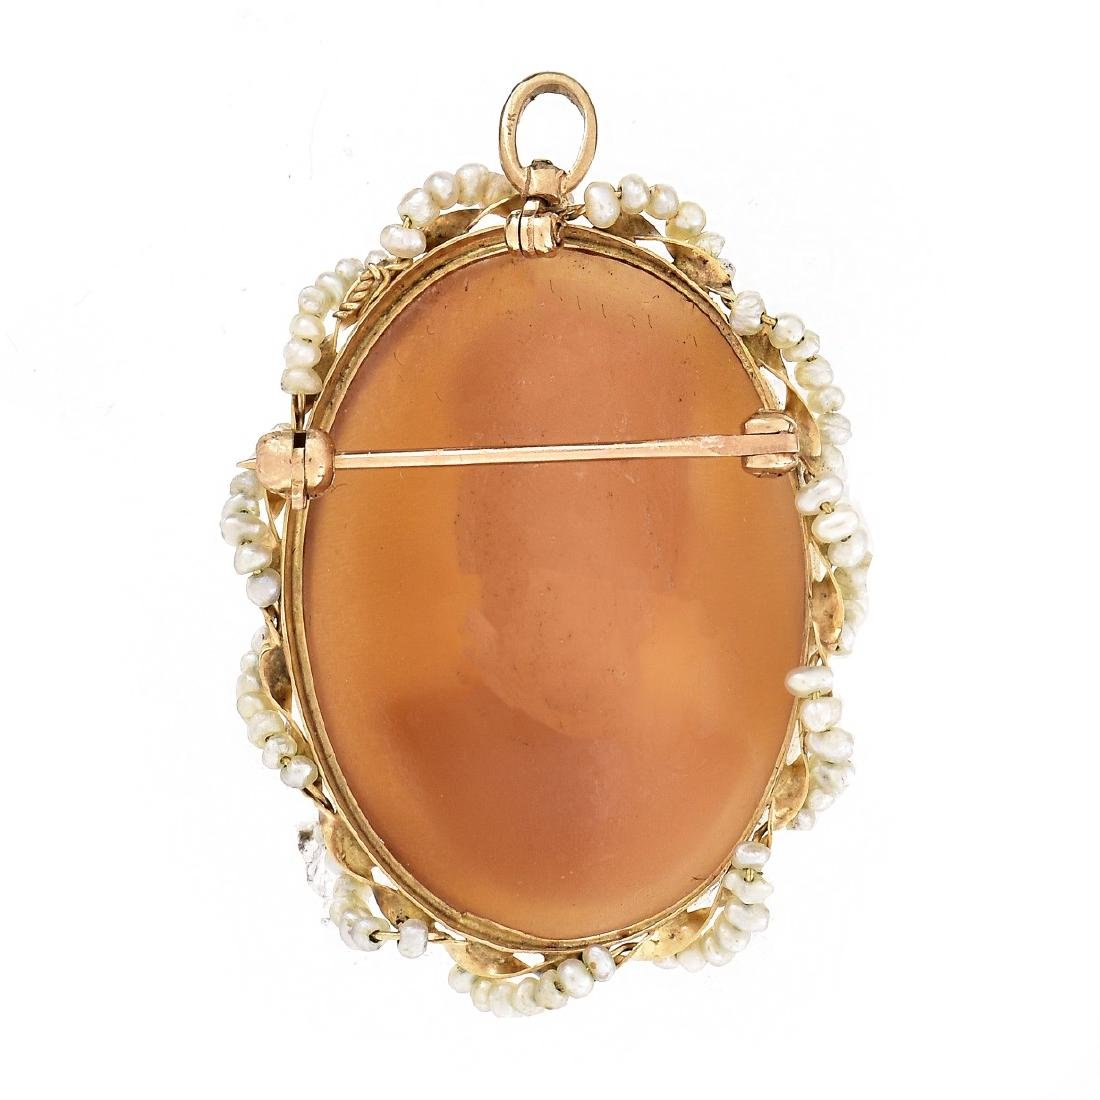 14K Gold and Seed Pearl Cameo Pendant Brooch - 3